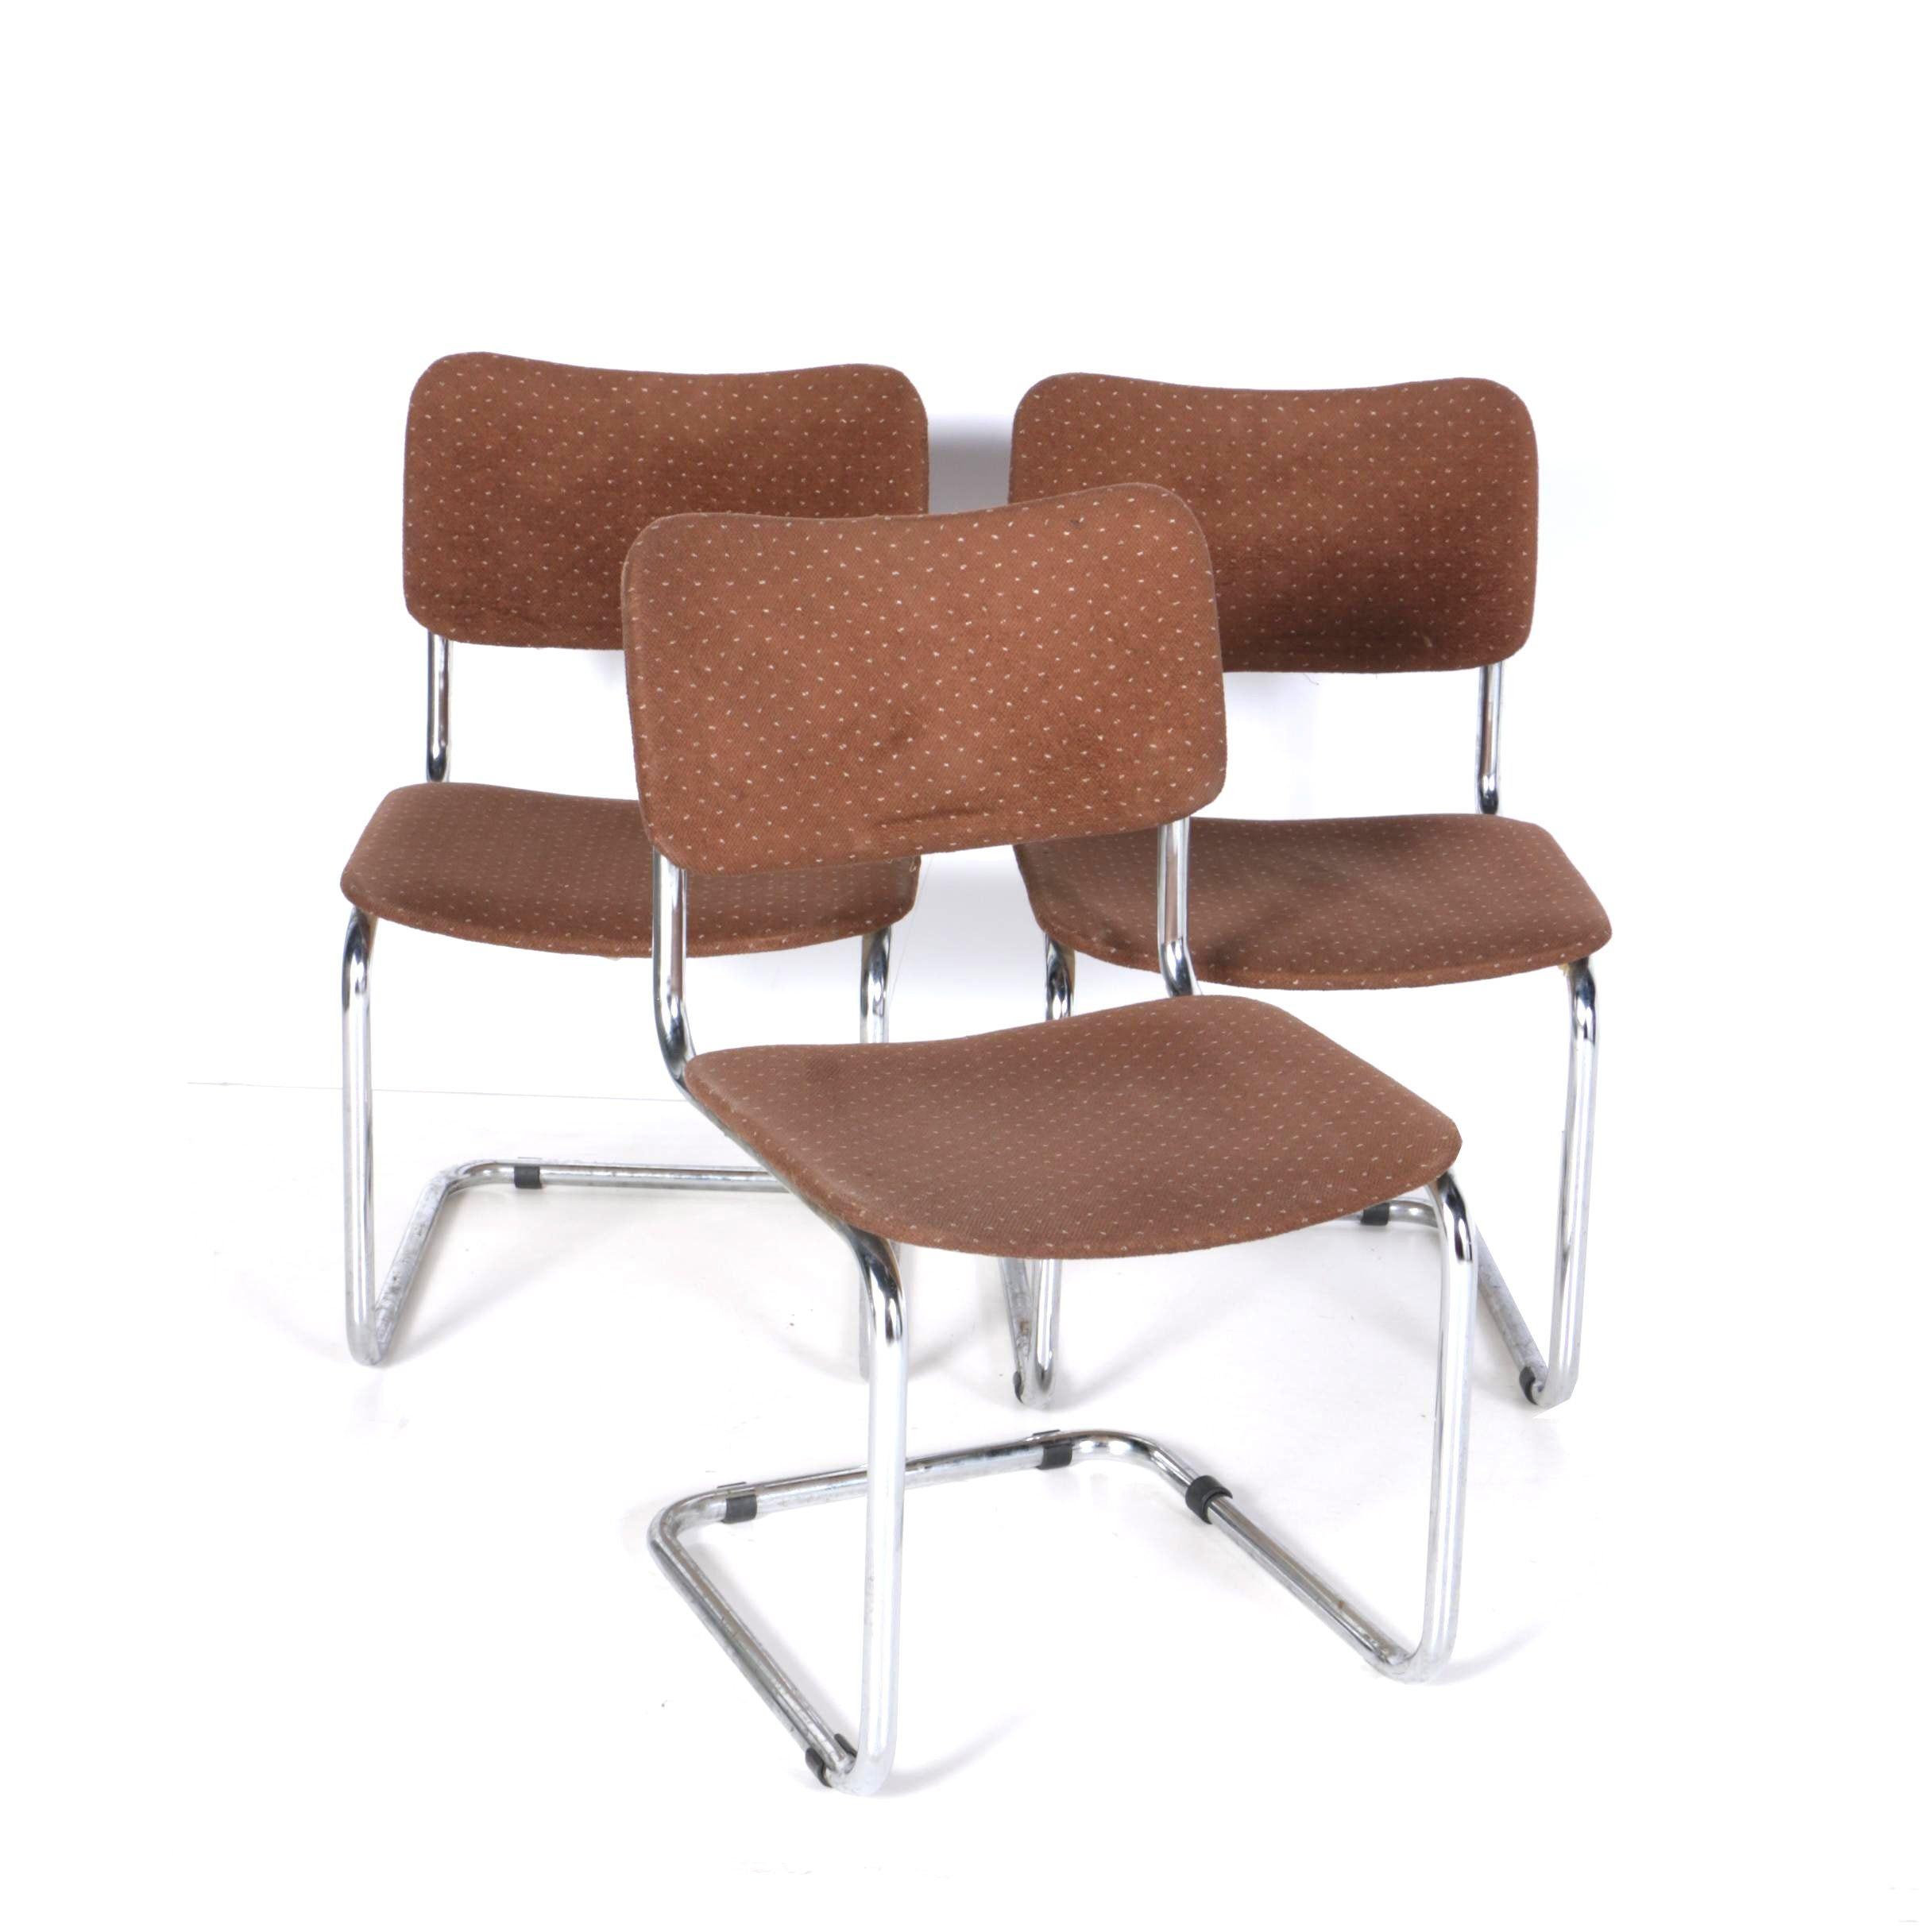 """Three 1980s Modern """"Cesca"""" Style Chairs"""